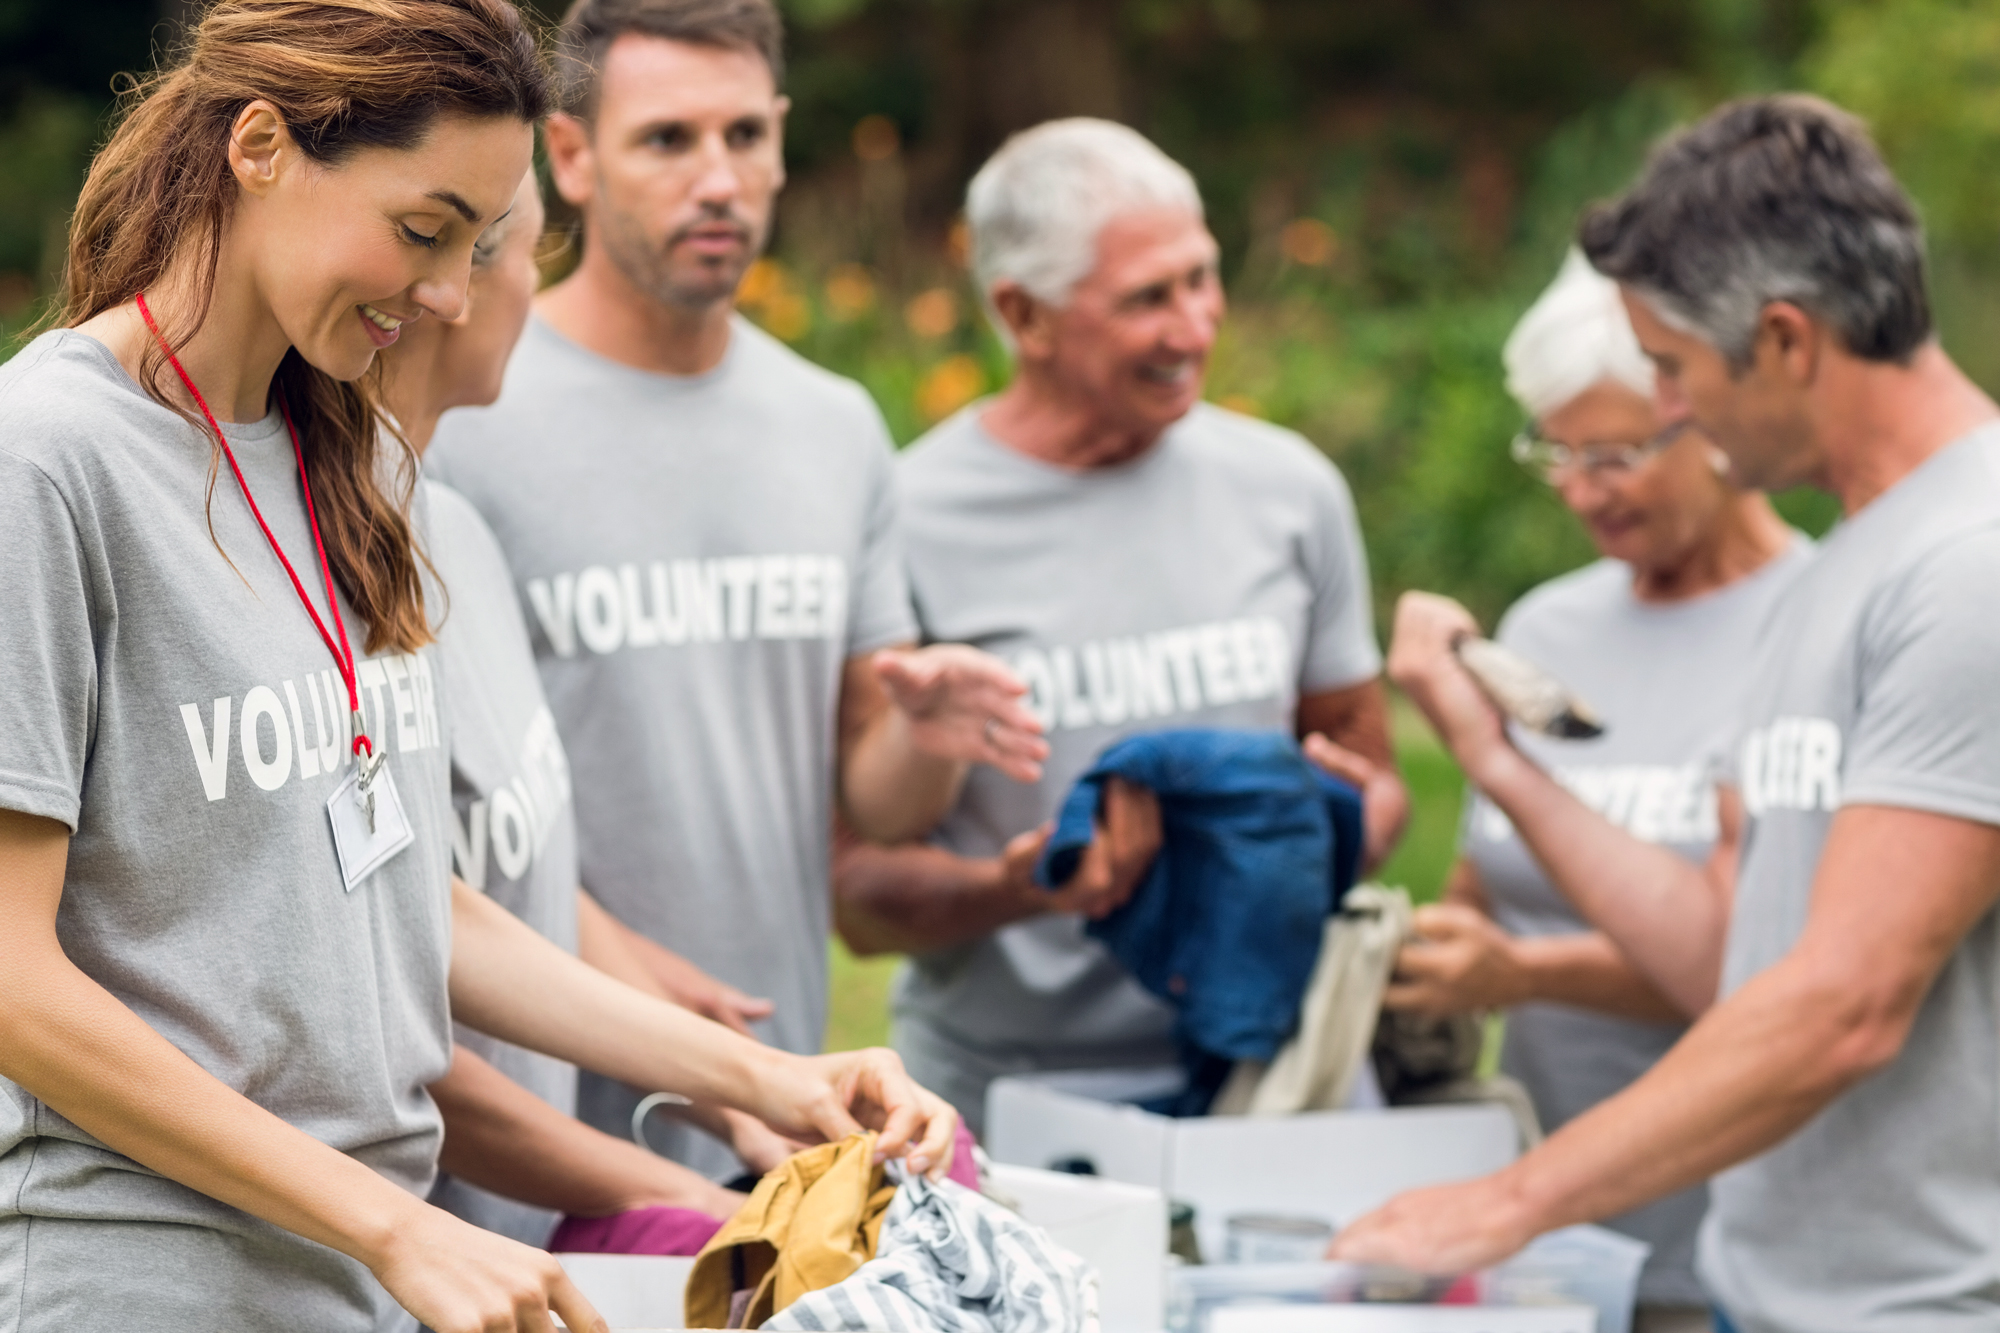 Volunteers at an event